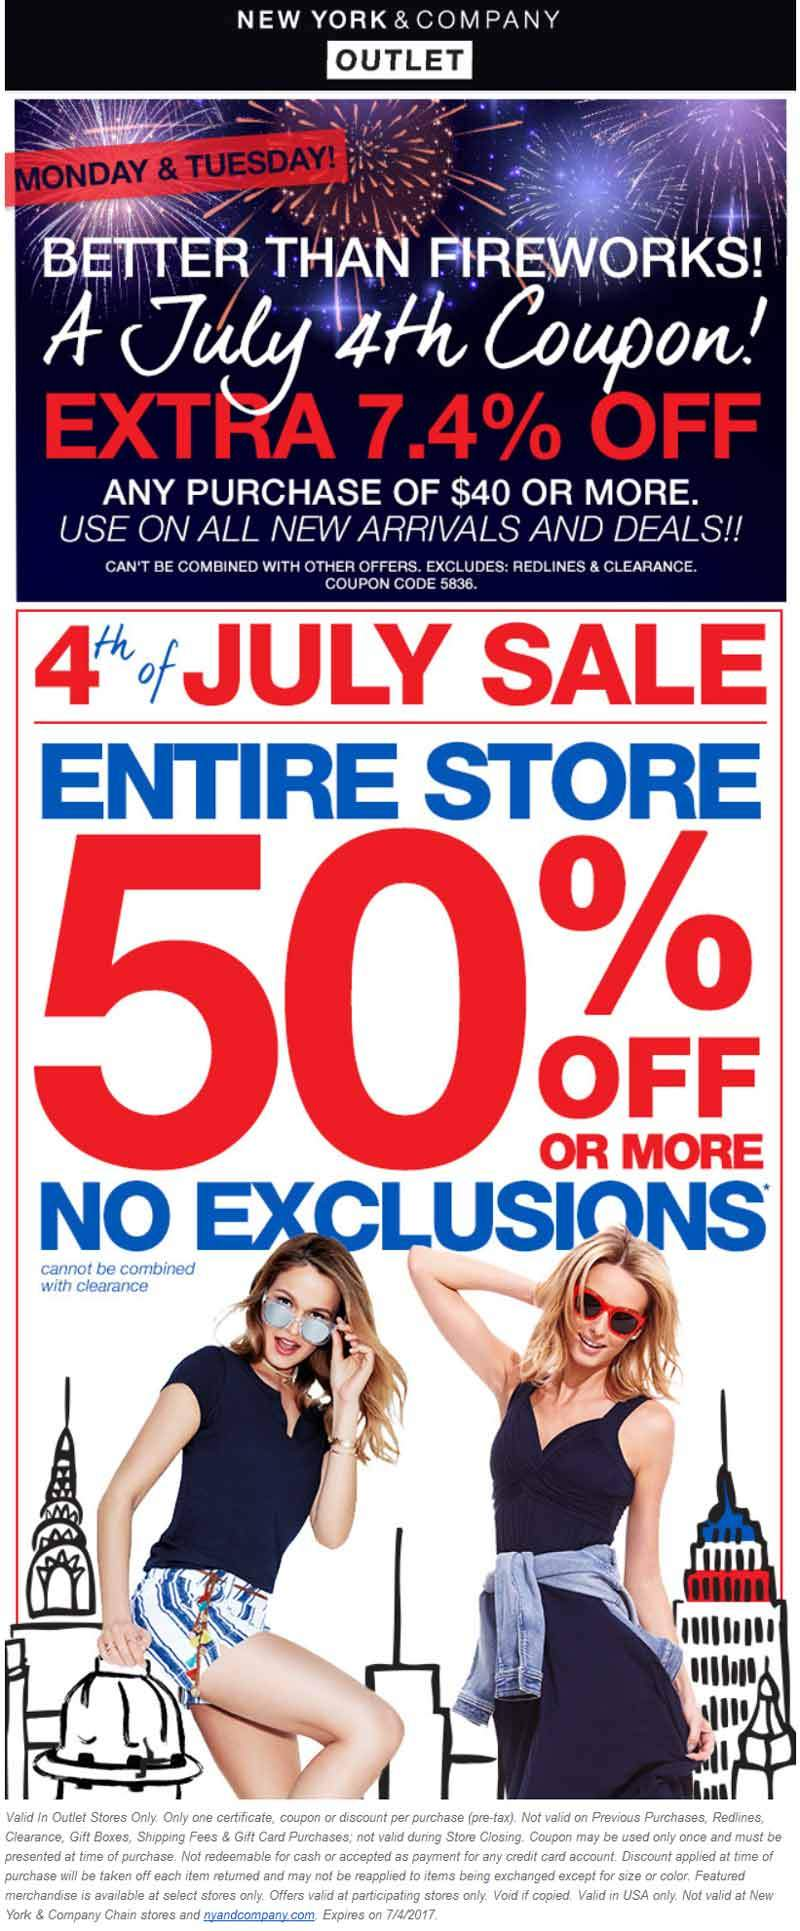 New York & Company Coupon December 2018 Everything is 50% off & more at New York & Company Outlet locations